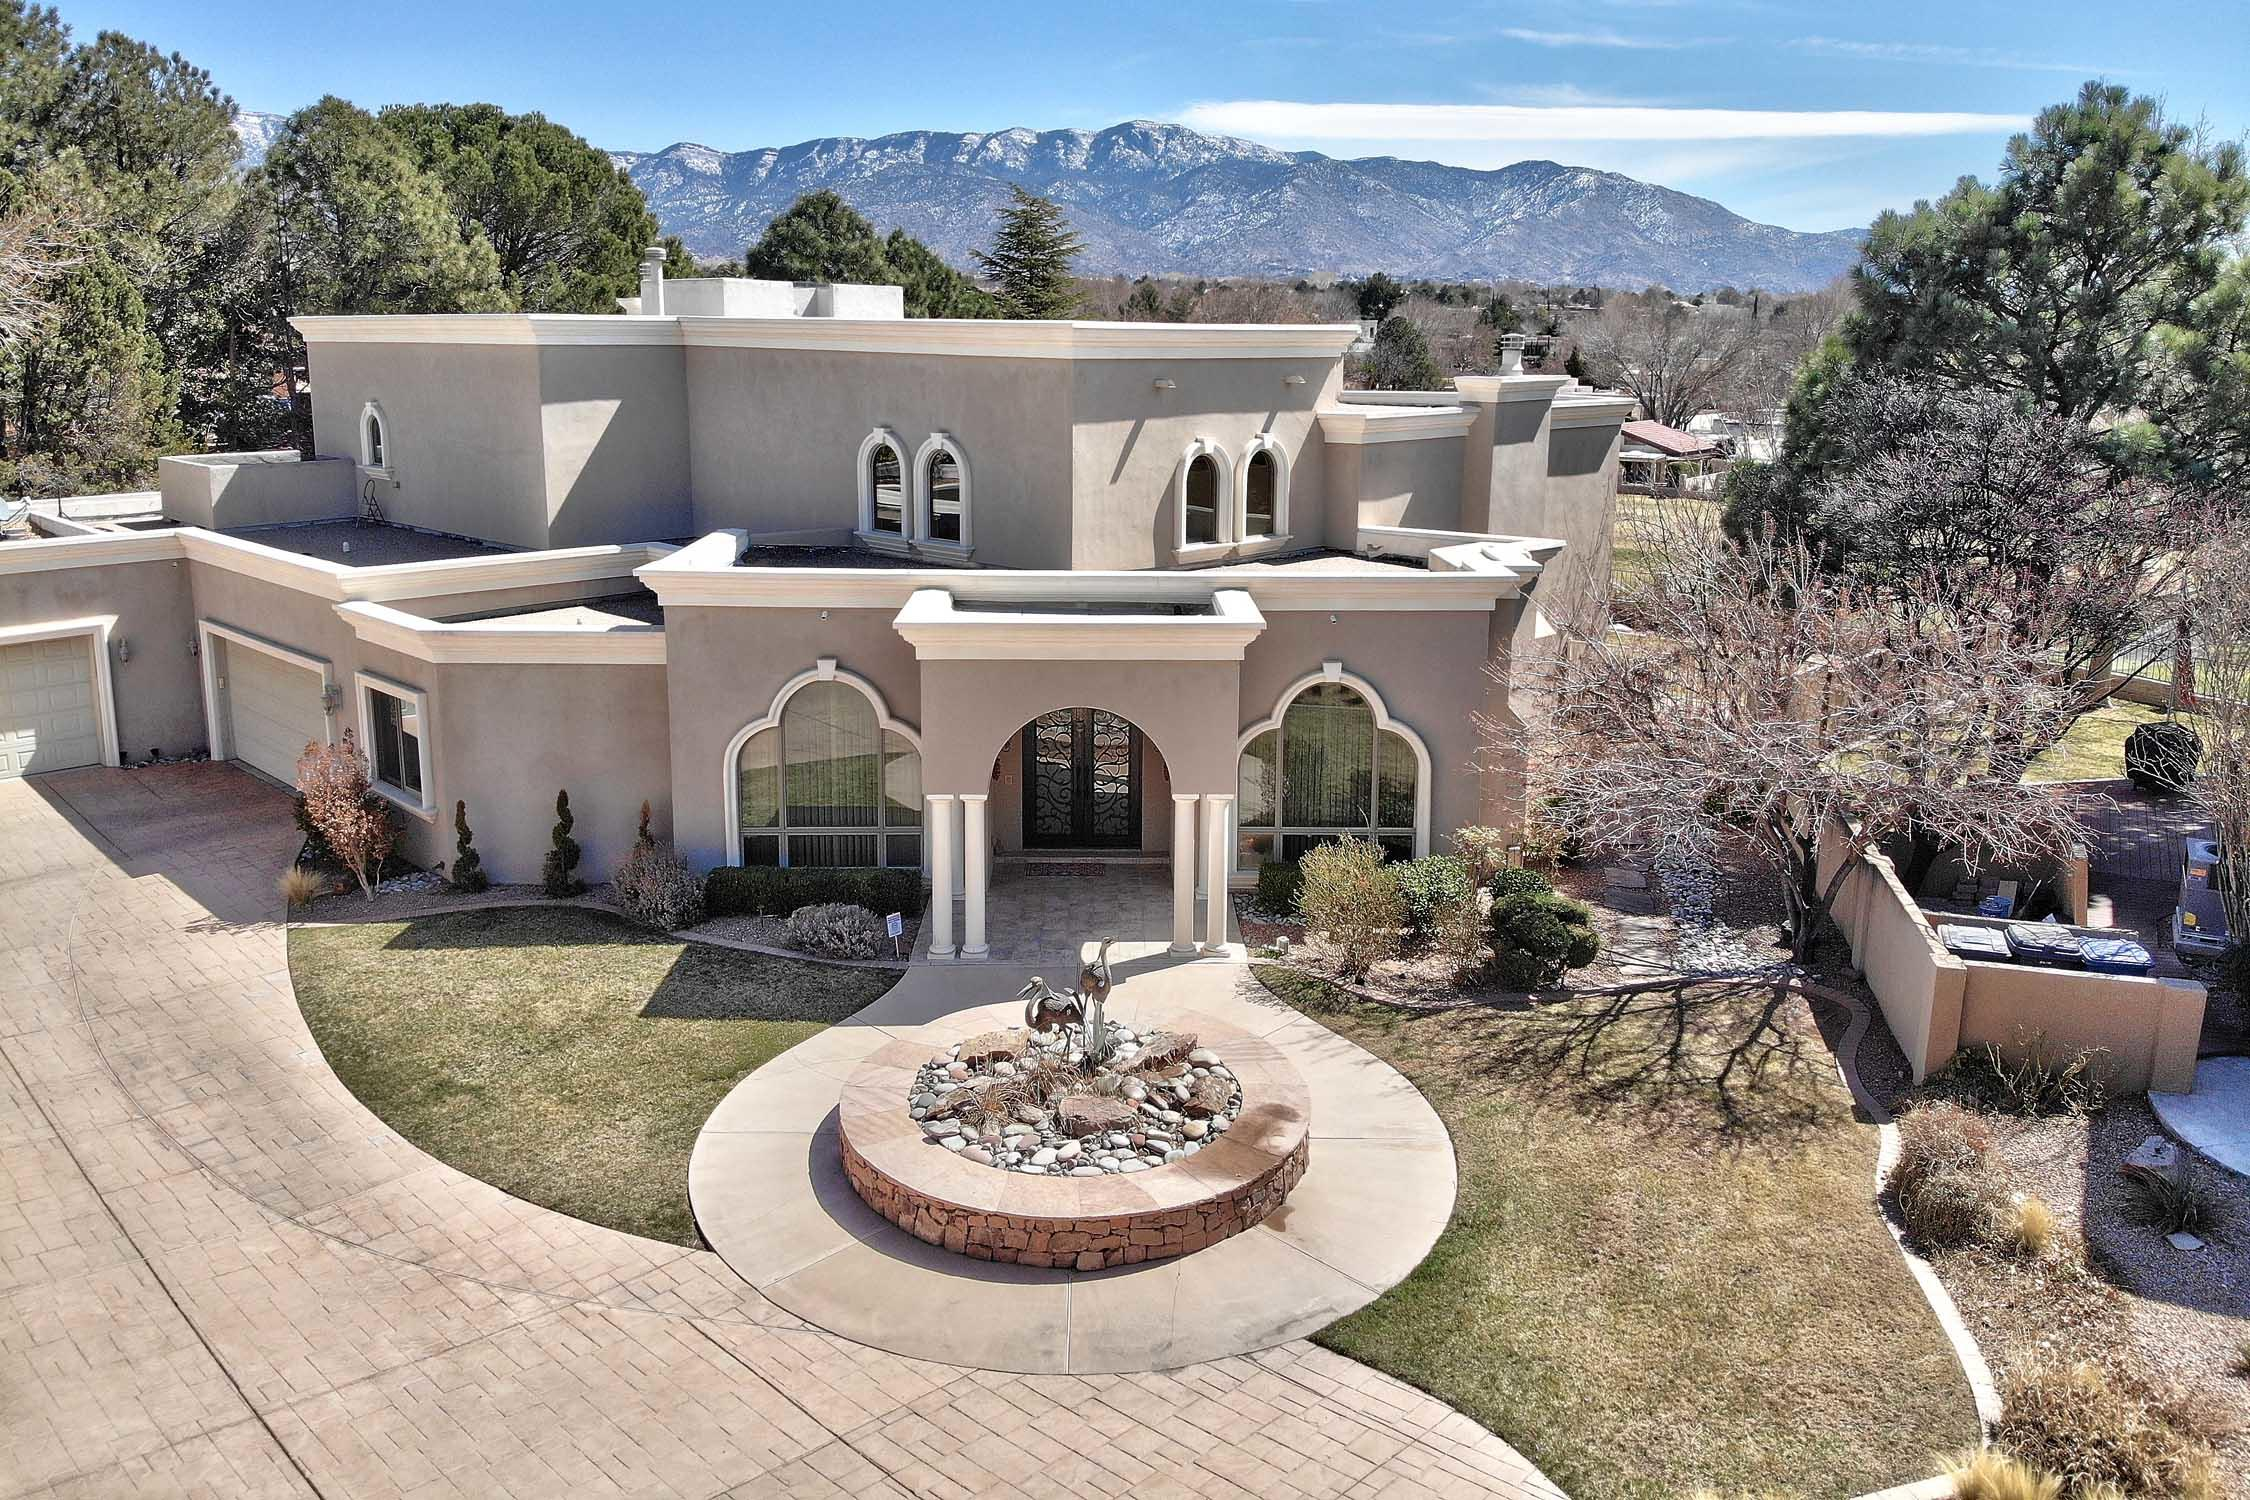 Live your dream...in this extraordinarily beautiful, luxury home!  Quality built on the 3 fairway of Tanoan Golf course with views of mountains, golf course and city lights! Some of the exceptional features ... elevator to upper bedrooms, Cantera custom entry doors, 22ft ceilings, all walls are diamond plaster, Movie room with 180 inch screen, stunning master (opens to wrap around balcony) with  19x19  closet , spa like bath and fireplace. Italian travertine floors, wet bar down and morning bar up,.  Amazing kitchen wit Sub Zero ref. and separate freezer, 6 burner, plus grill, Wolf range and double ovens, granite counter tops and custom cabinets.  Large inground pool with auto safety cover and inground spa. 4 car garage with built in  closets, new security system w/8 cameras...see ''more